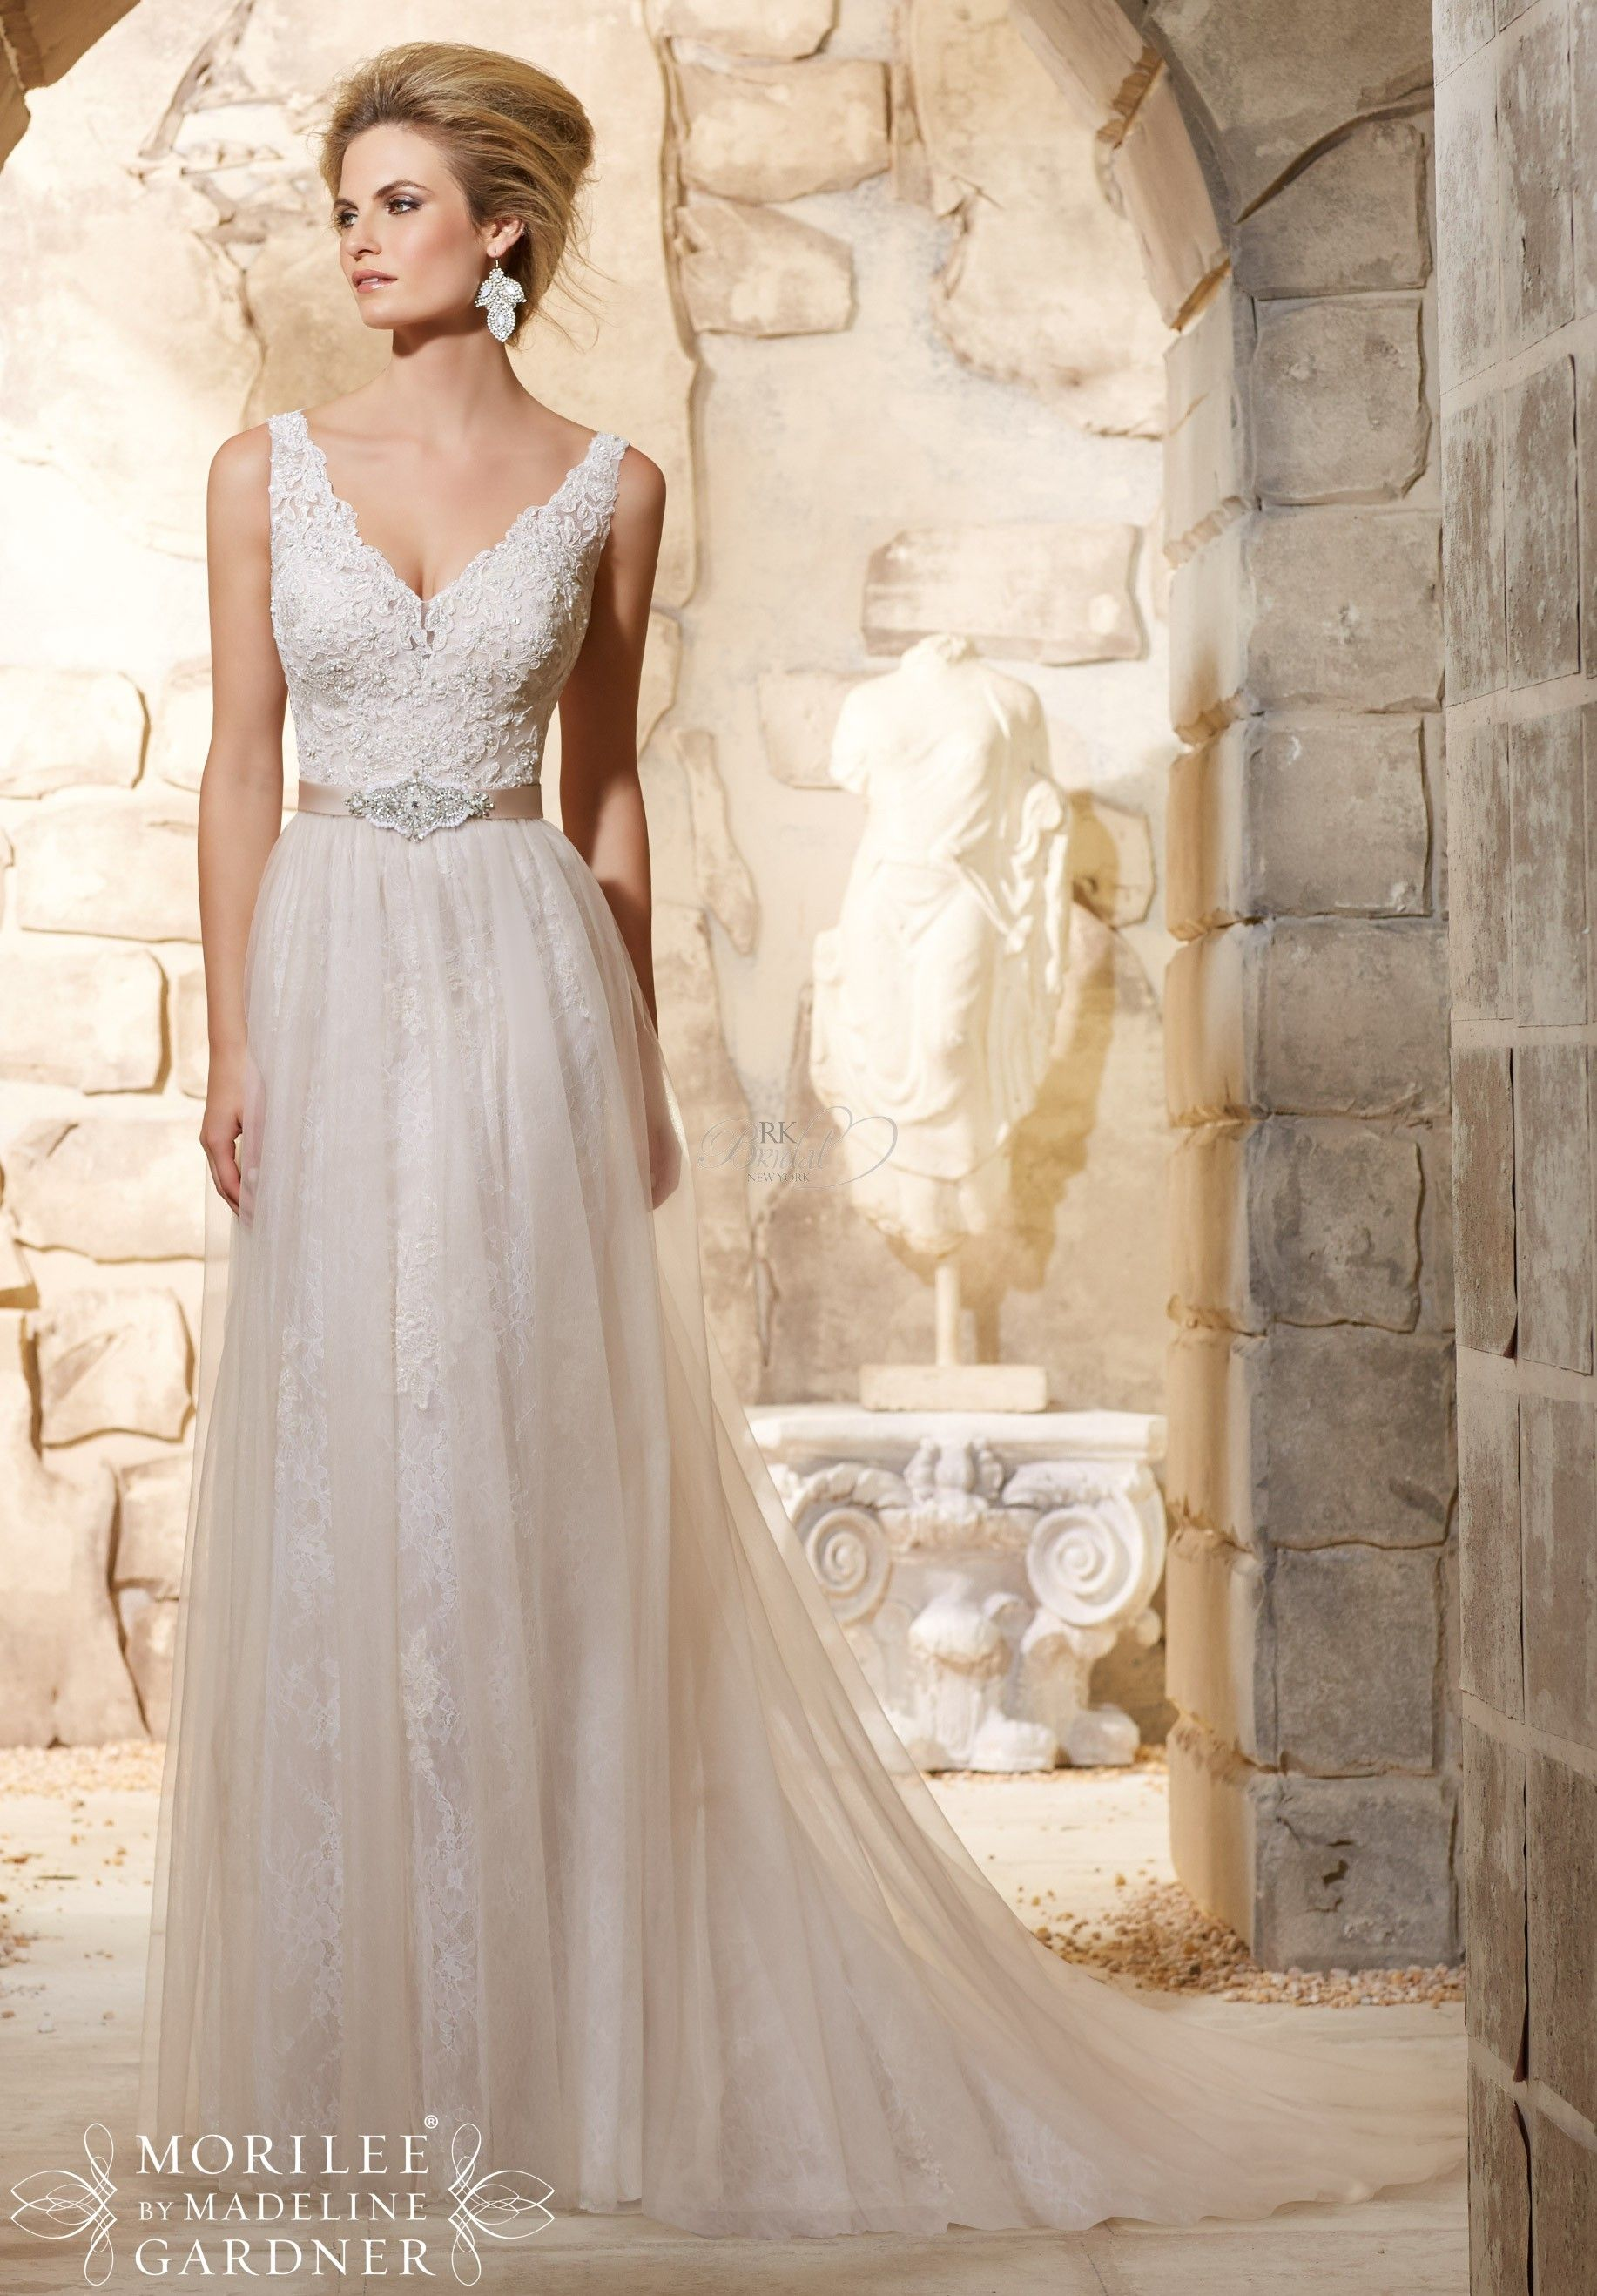 Mori lee bridal fall style the dress pinterest